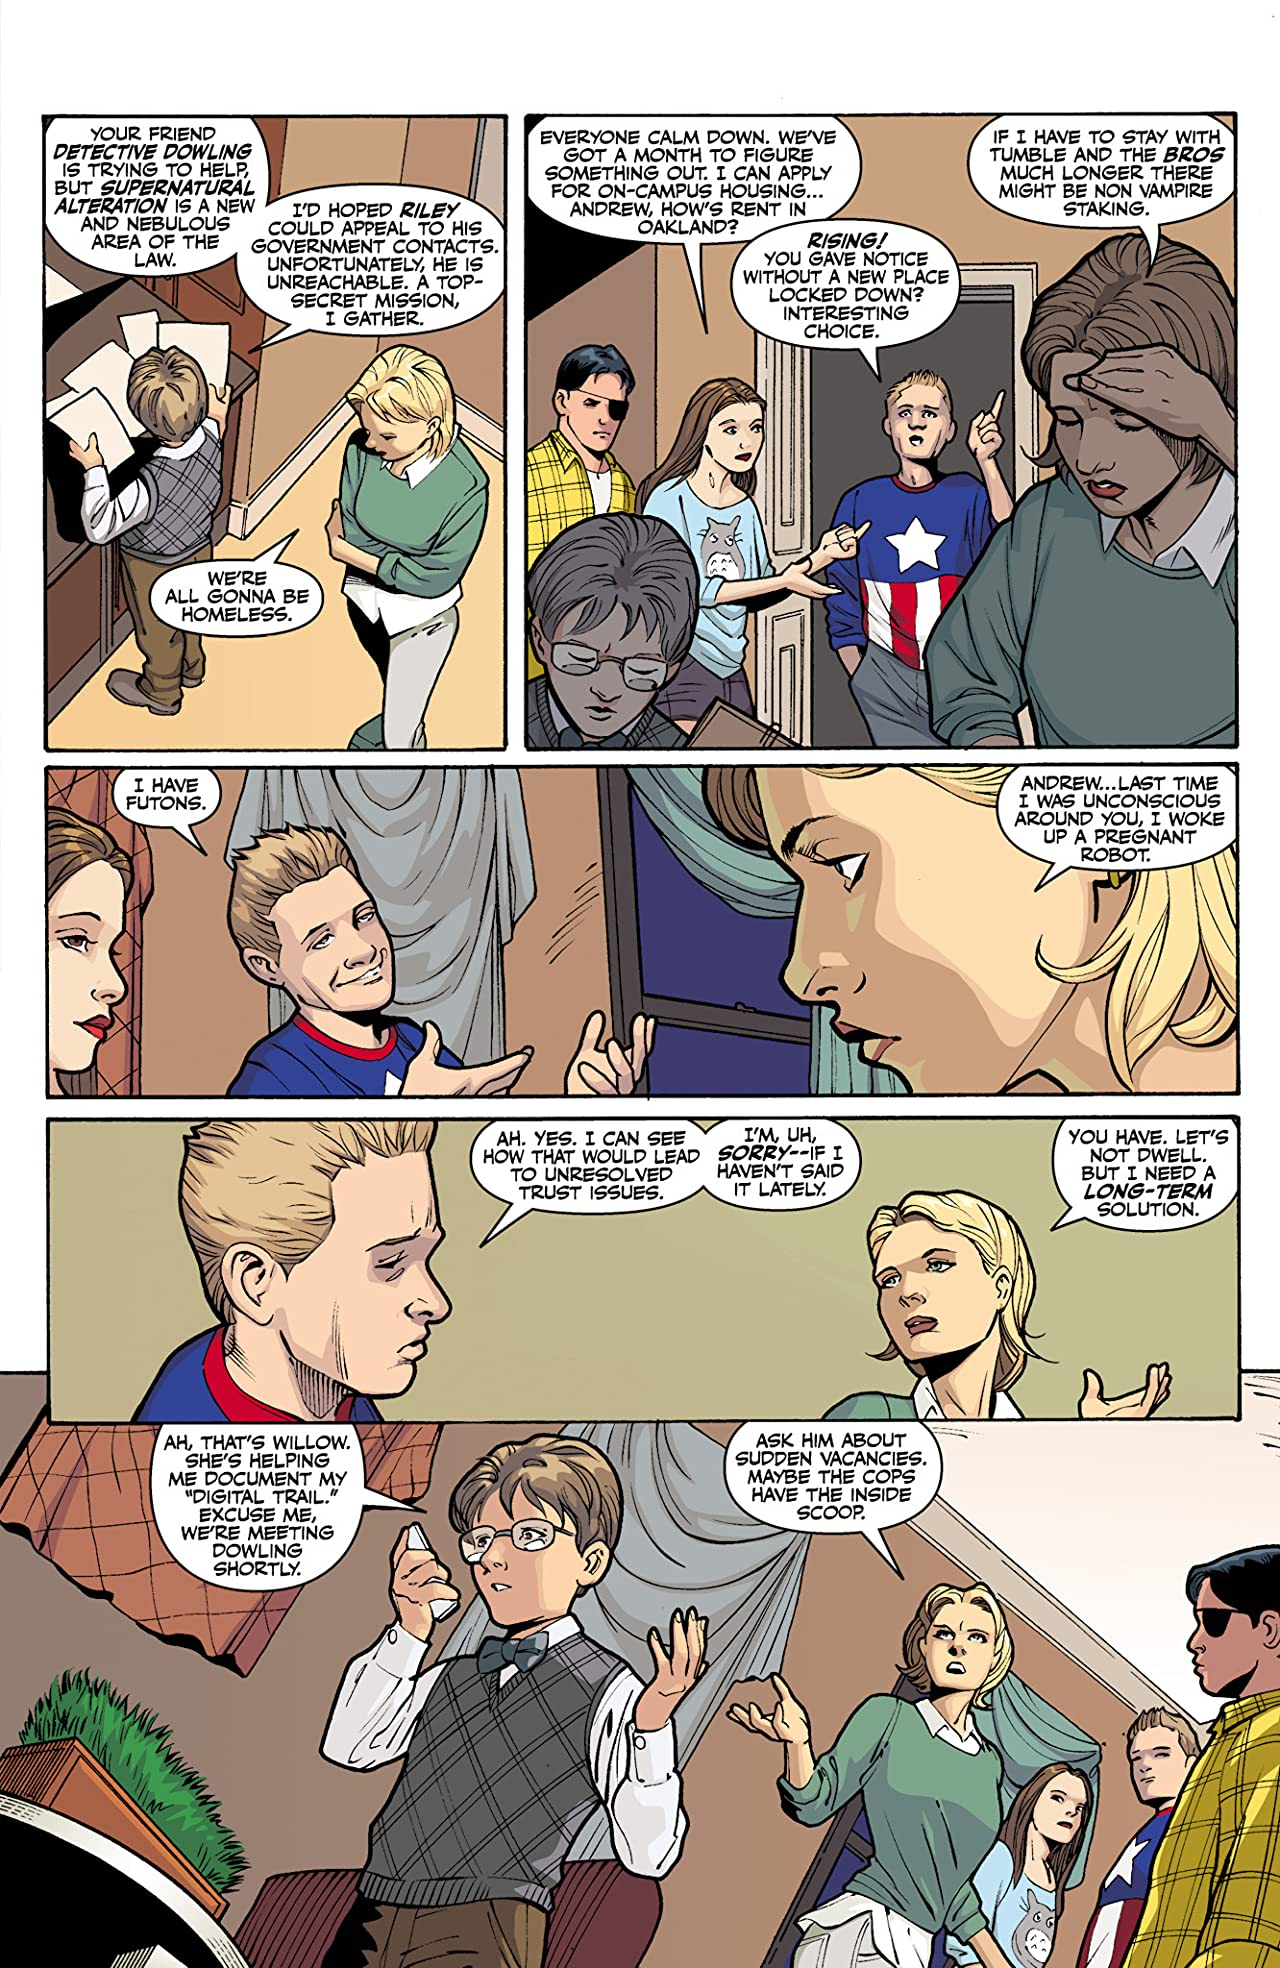 Buffy the Vampire Slayer: Season 10 #6